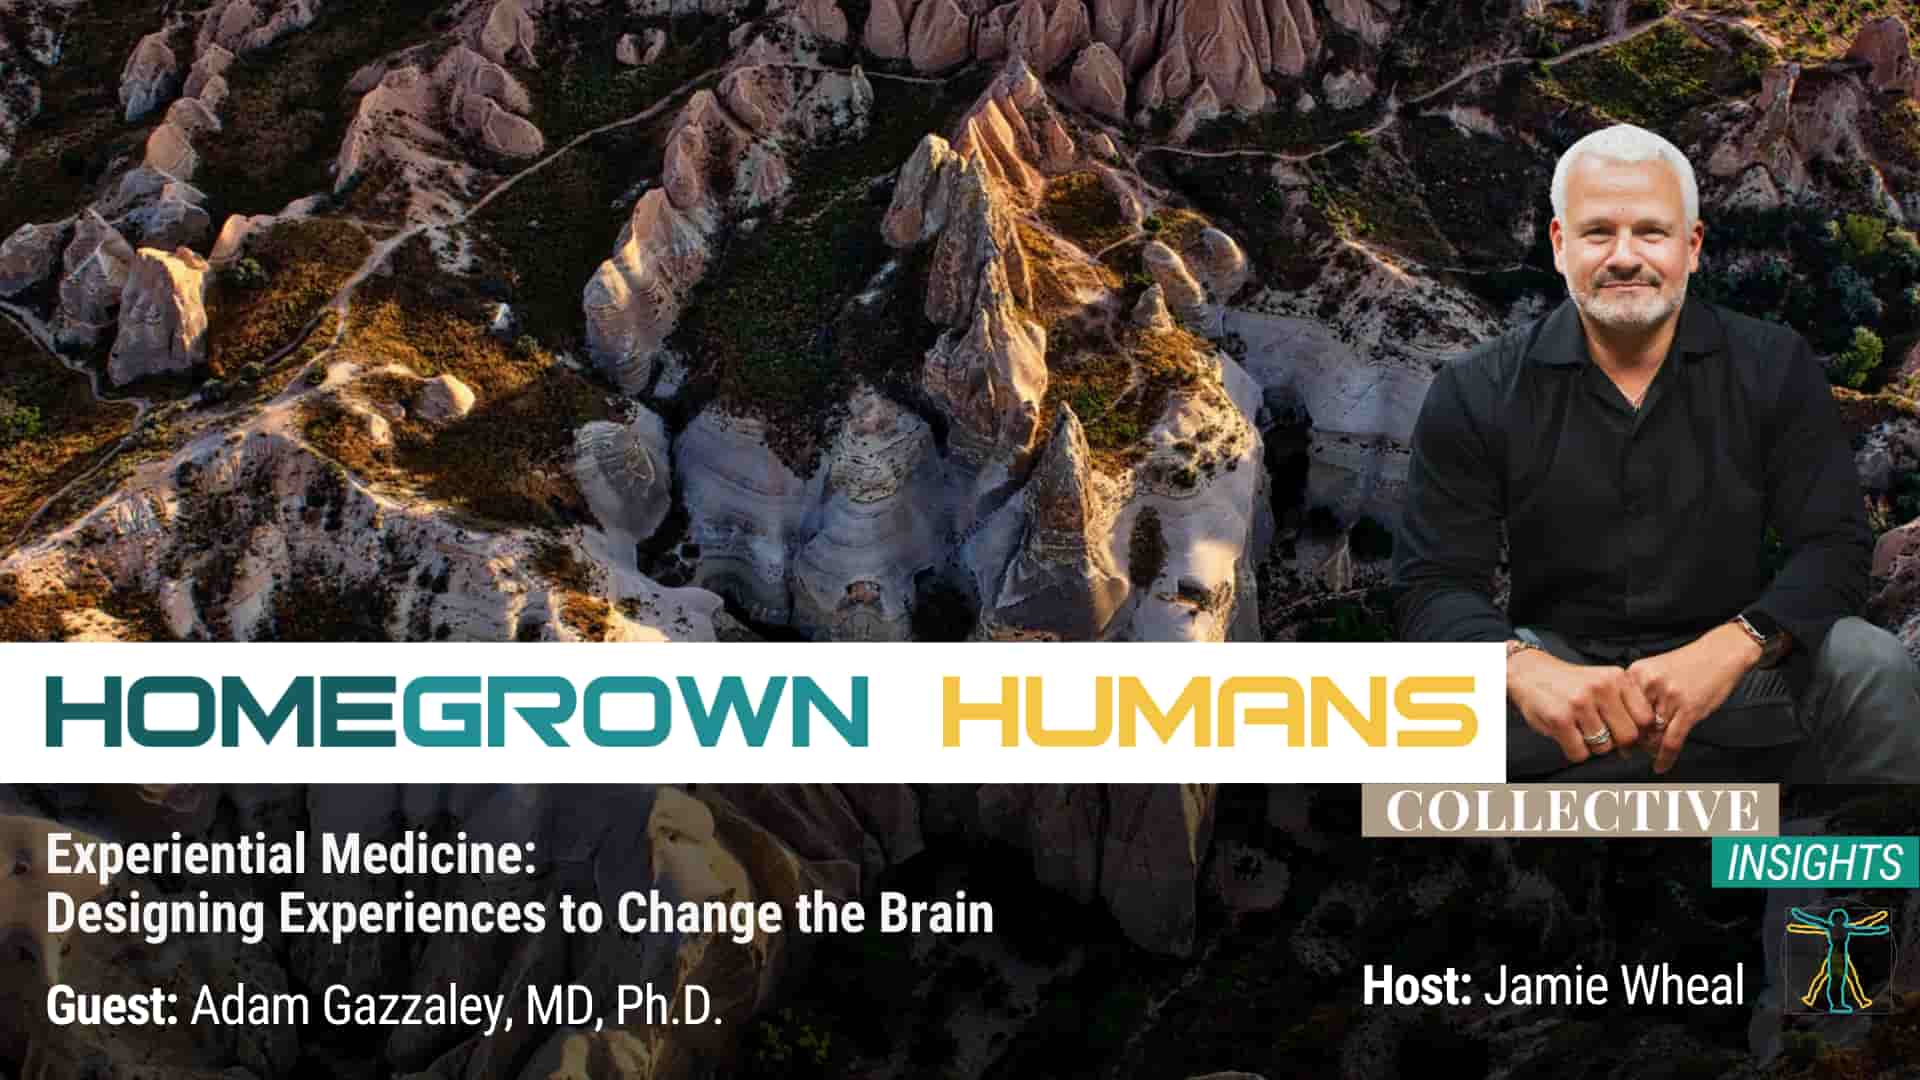 HomeGrown Humans - Adam Gazzaley, MD, Ph.D. - Neuroscience - Hosted by Jamie Wheal